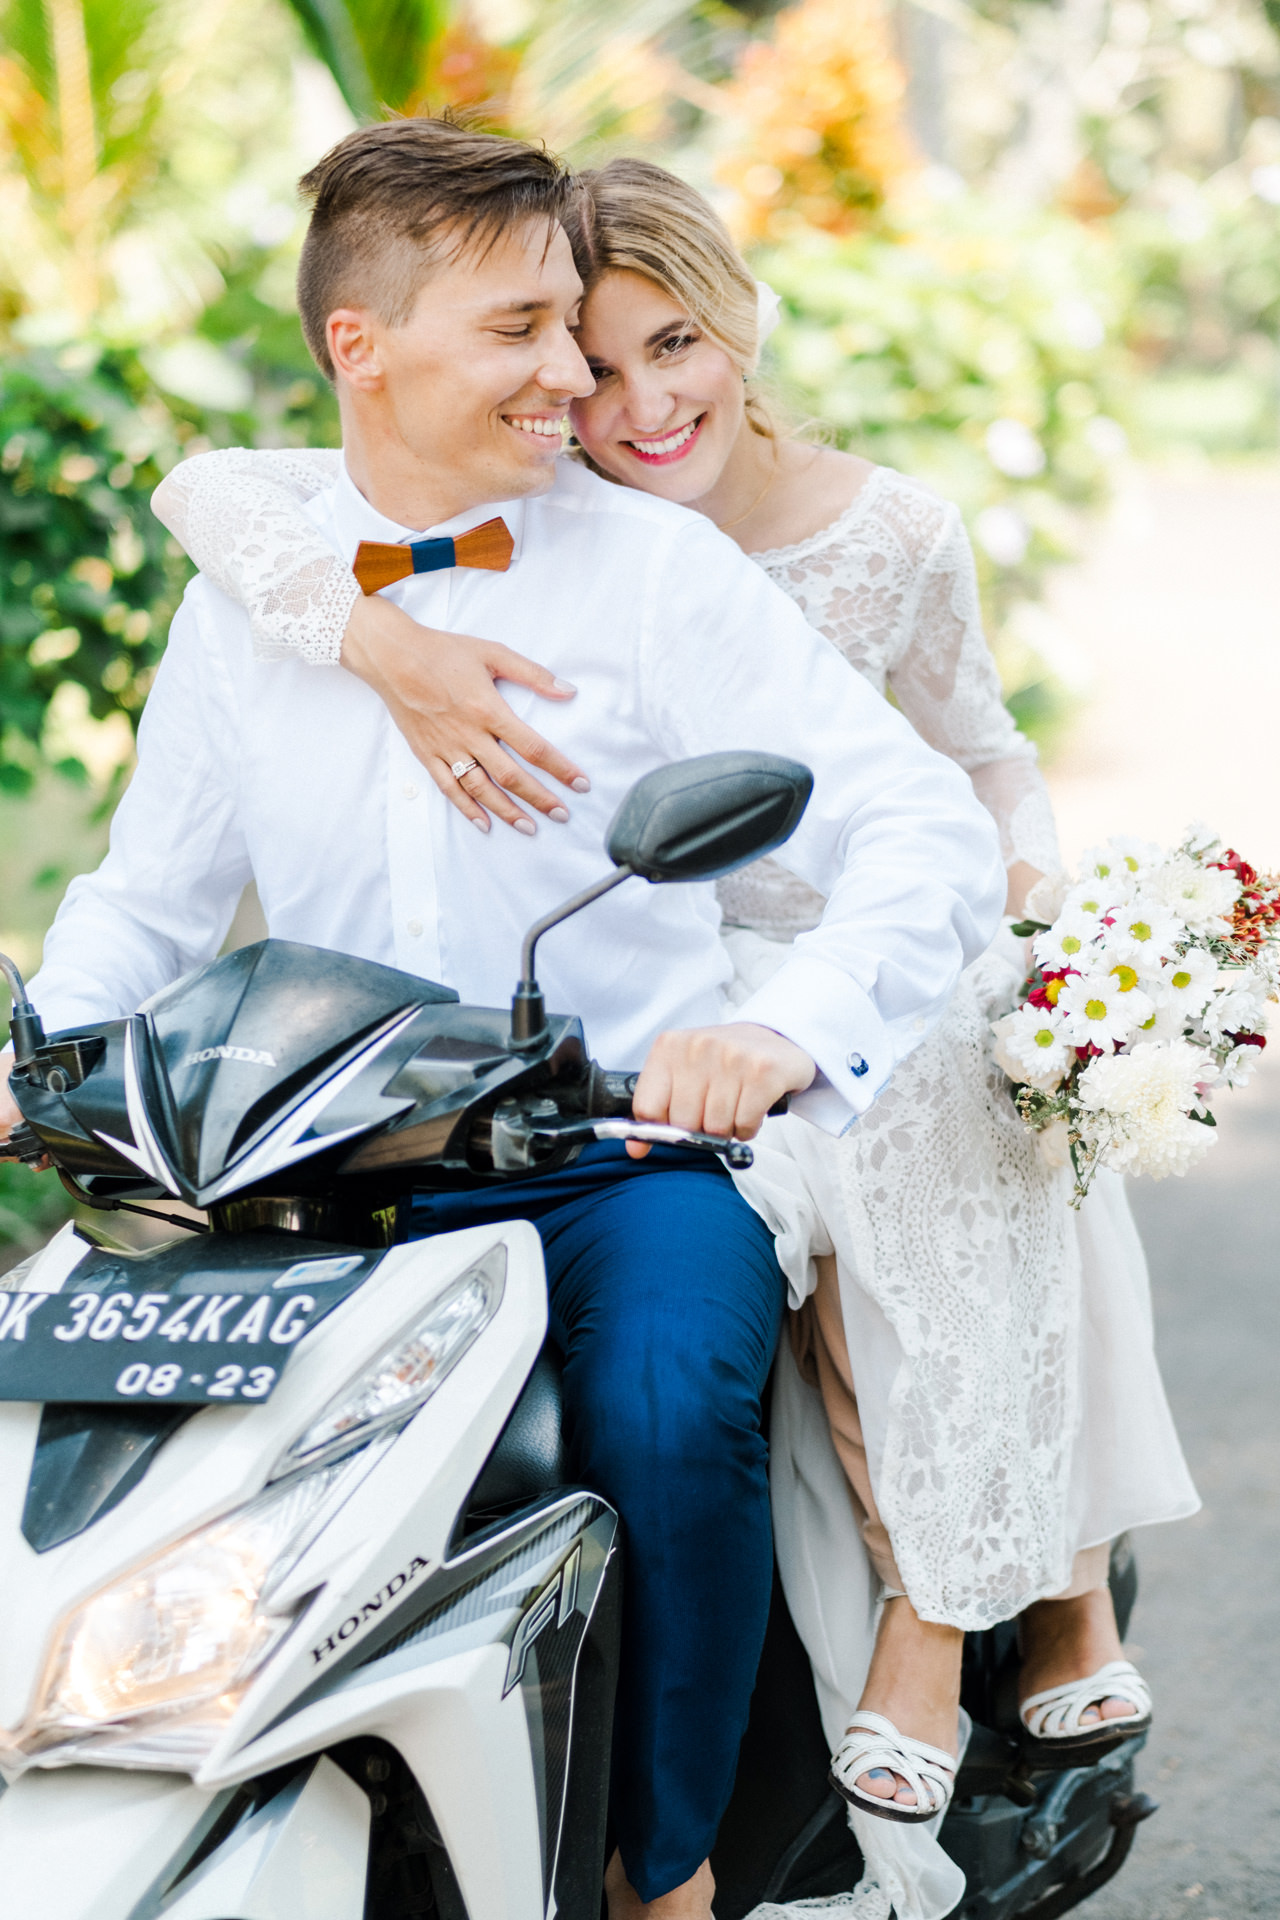 Bali Honeymoon Photographer | Joanna and Jakub's in Bali 10